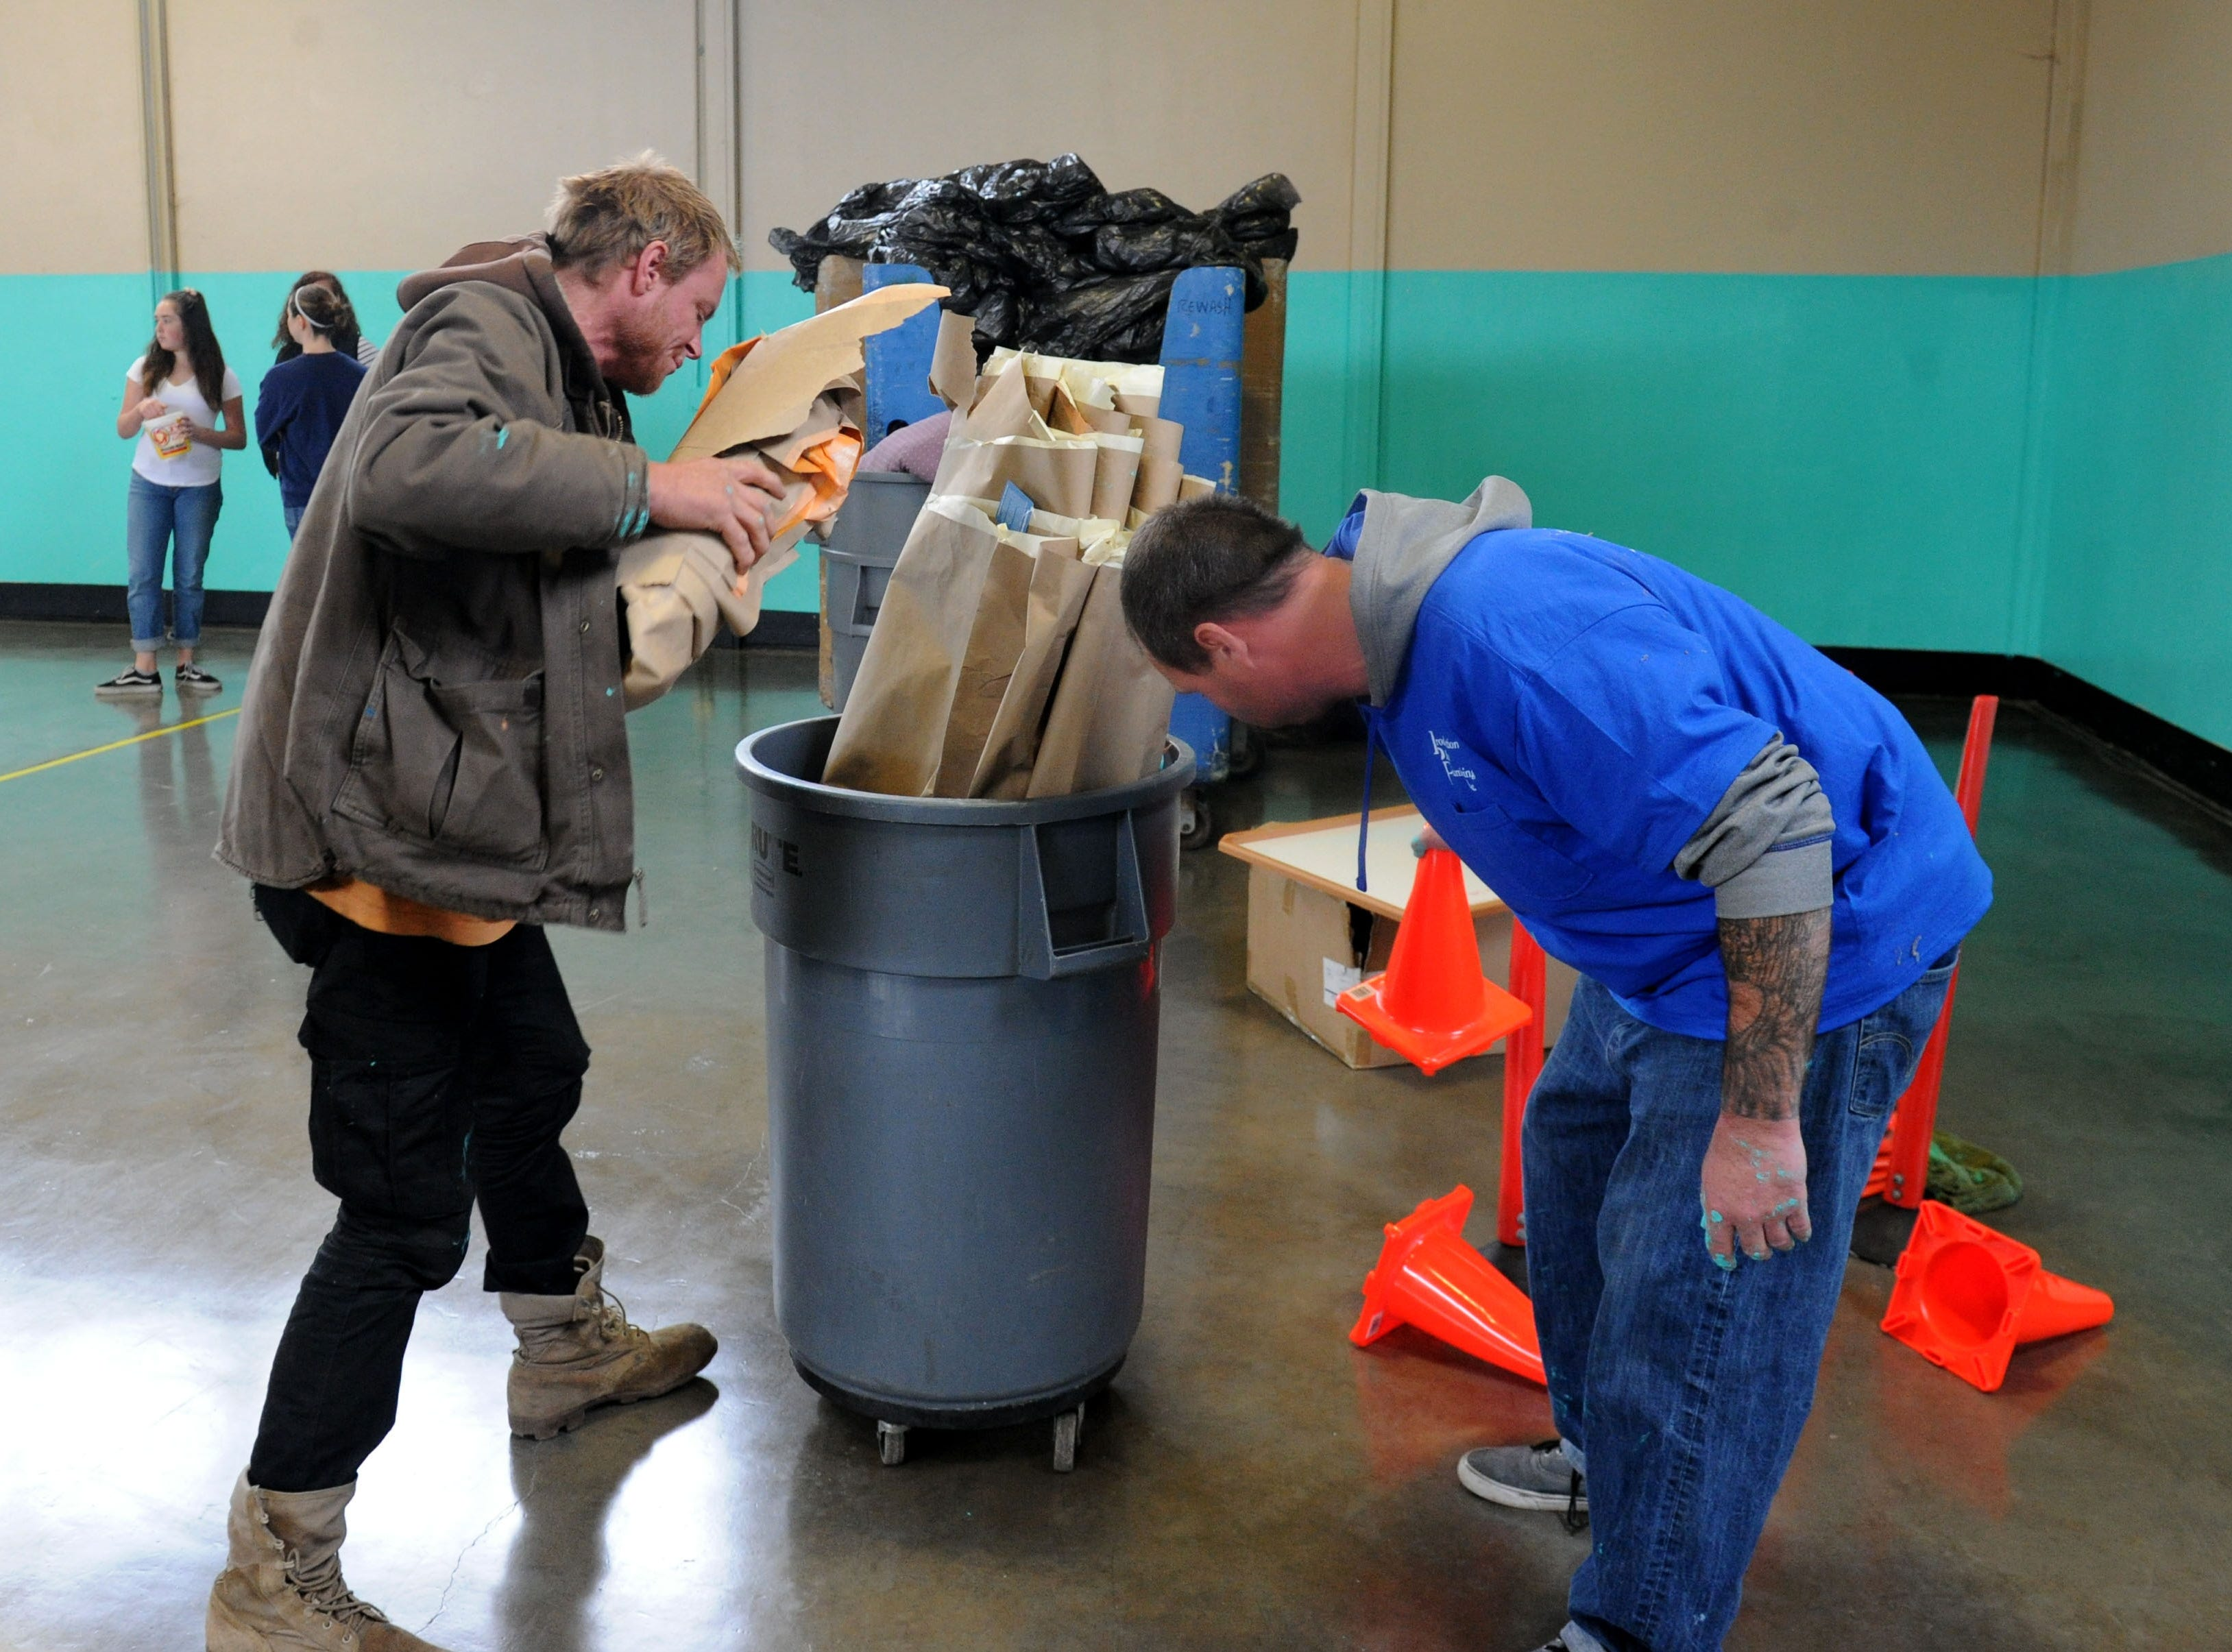 Volunteers Aron Varney (left) and Jesse White help clean up the homeless shelter Saturday at the National Guard Armory in Oxnard. Volunteers painted and cleaned so it could temporarily Saturday night because of the rain.